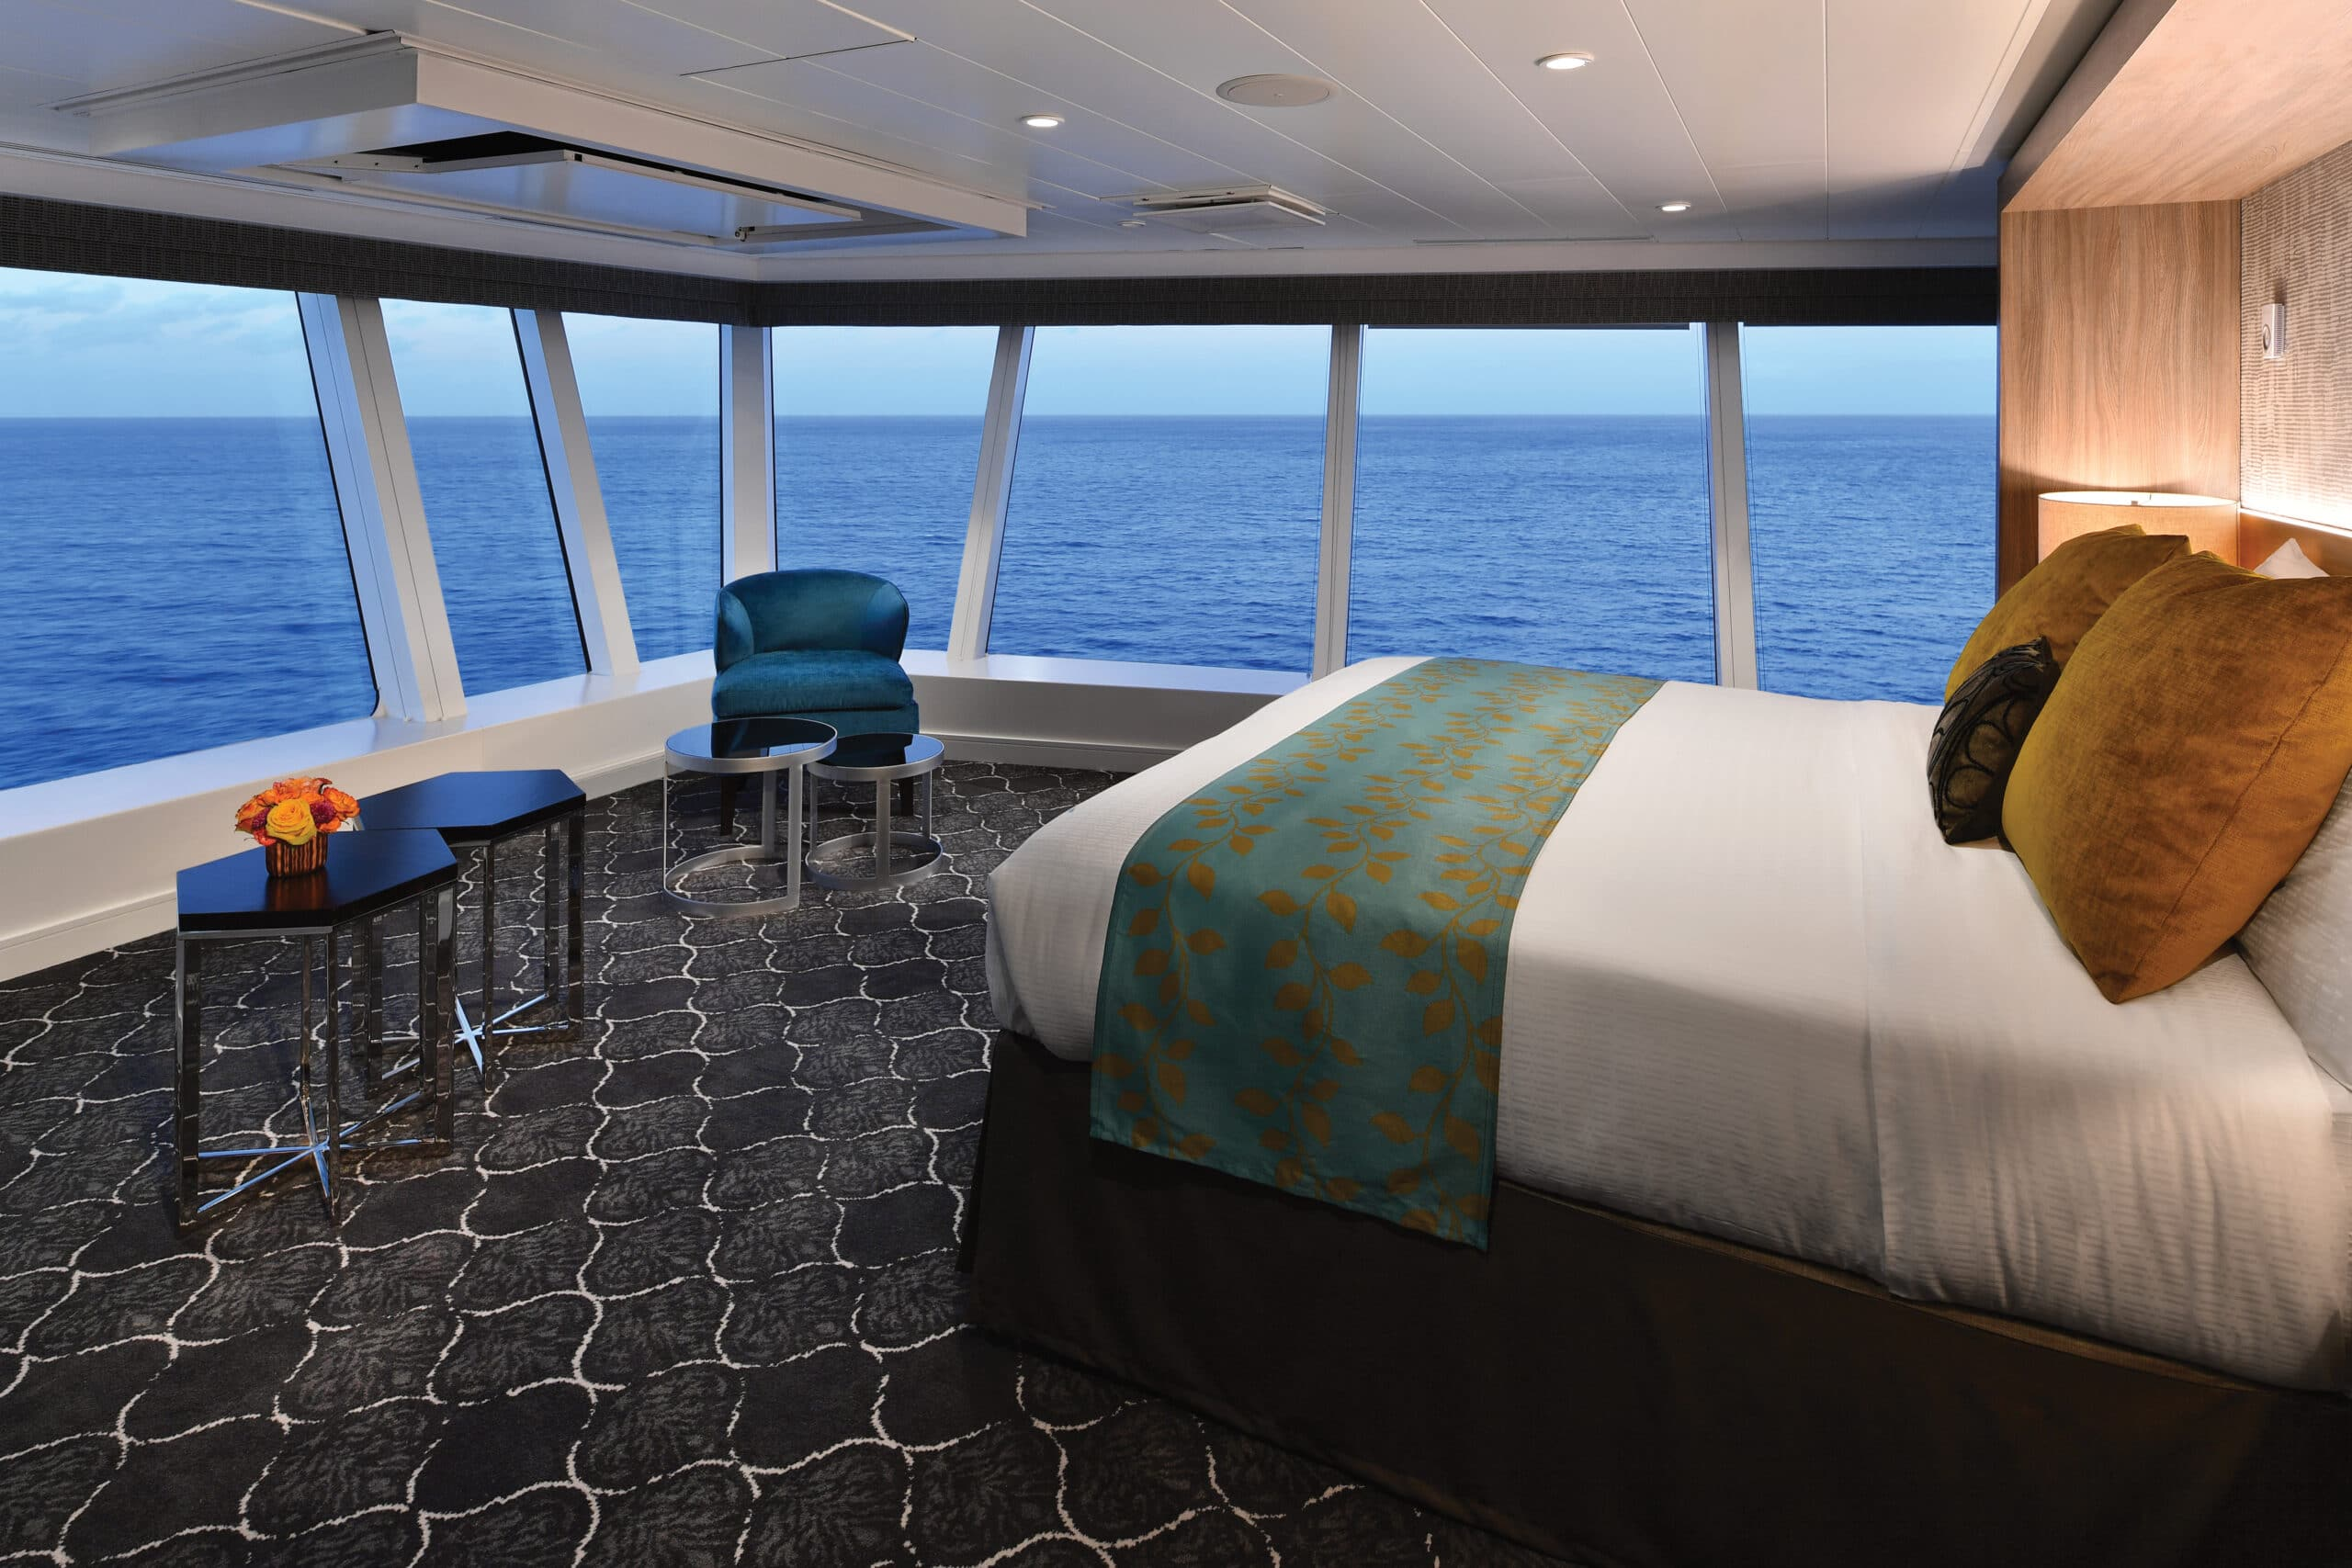 Royal-Caribbean-International-Allure-of-the-Seas-Oasis-of-the-seas-schip-cruiseschip-categorie up-ultimate-panorama-suite